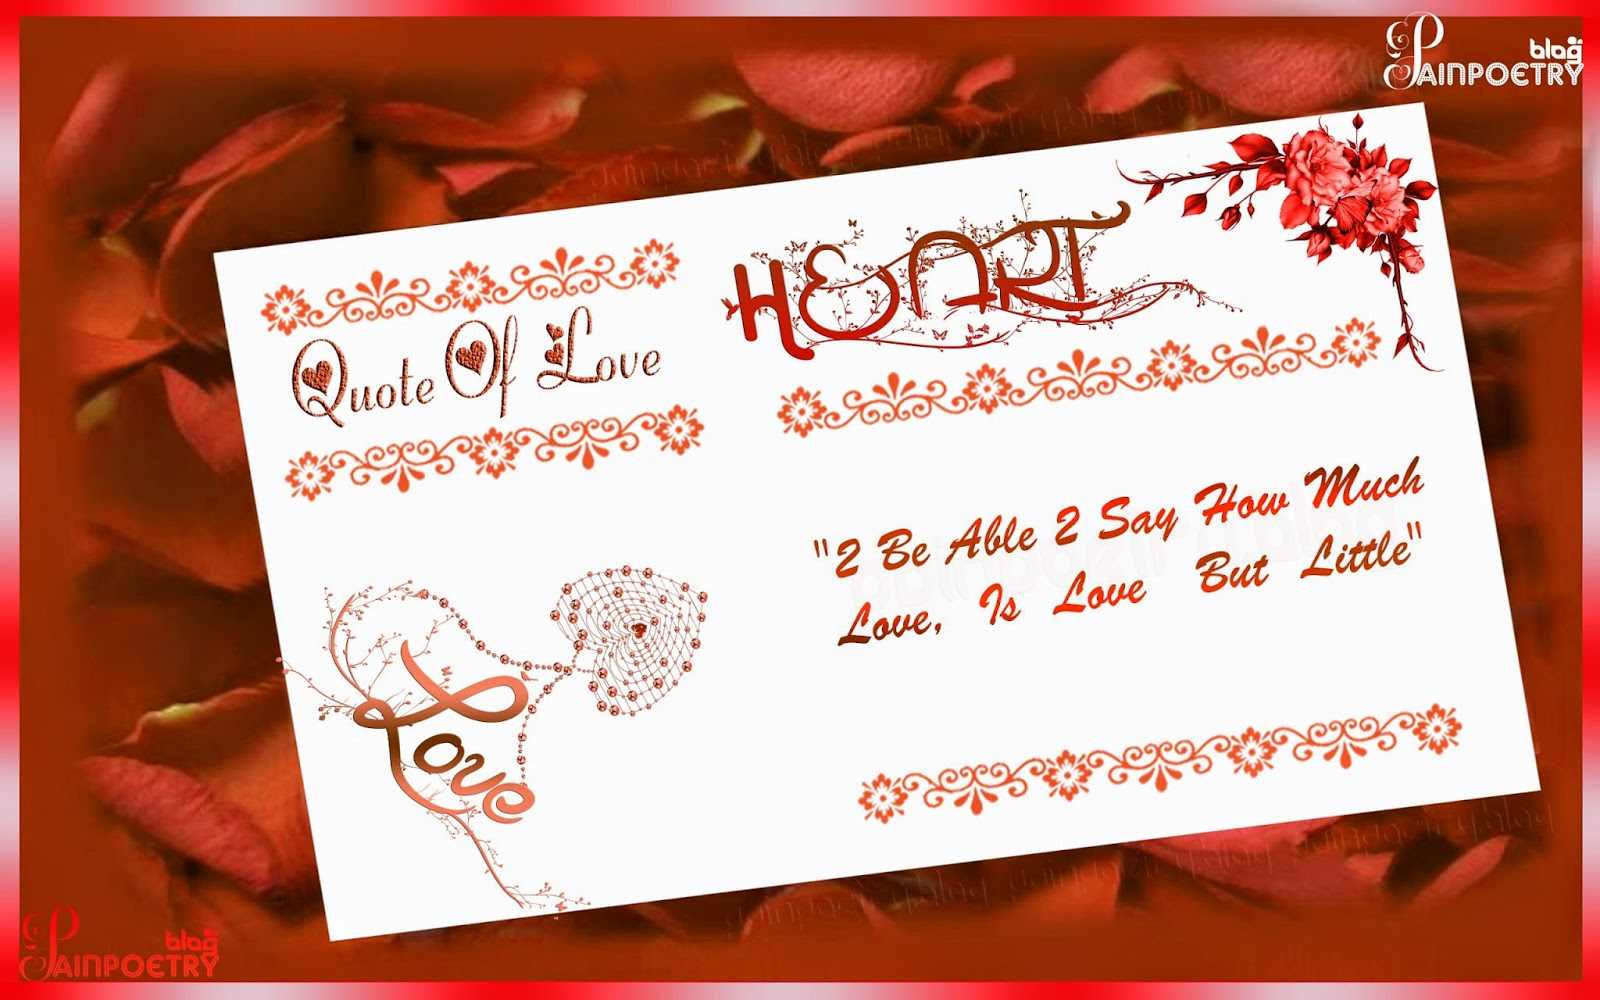 Love-Greeting-Wallpaper-Quote-Cute-Love-Inspirational-HD-Wide